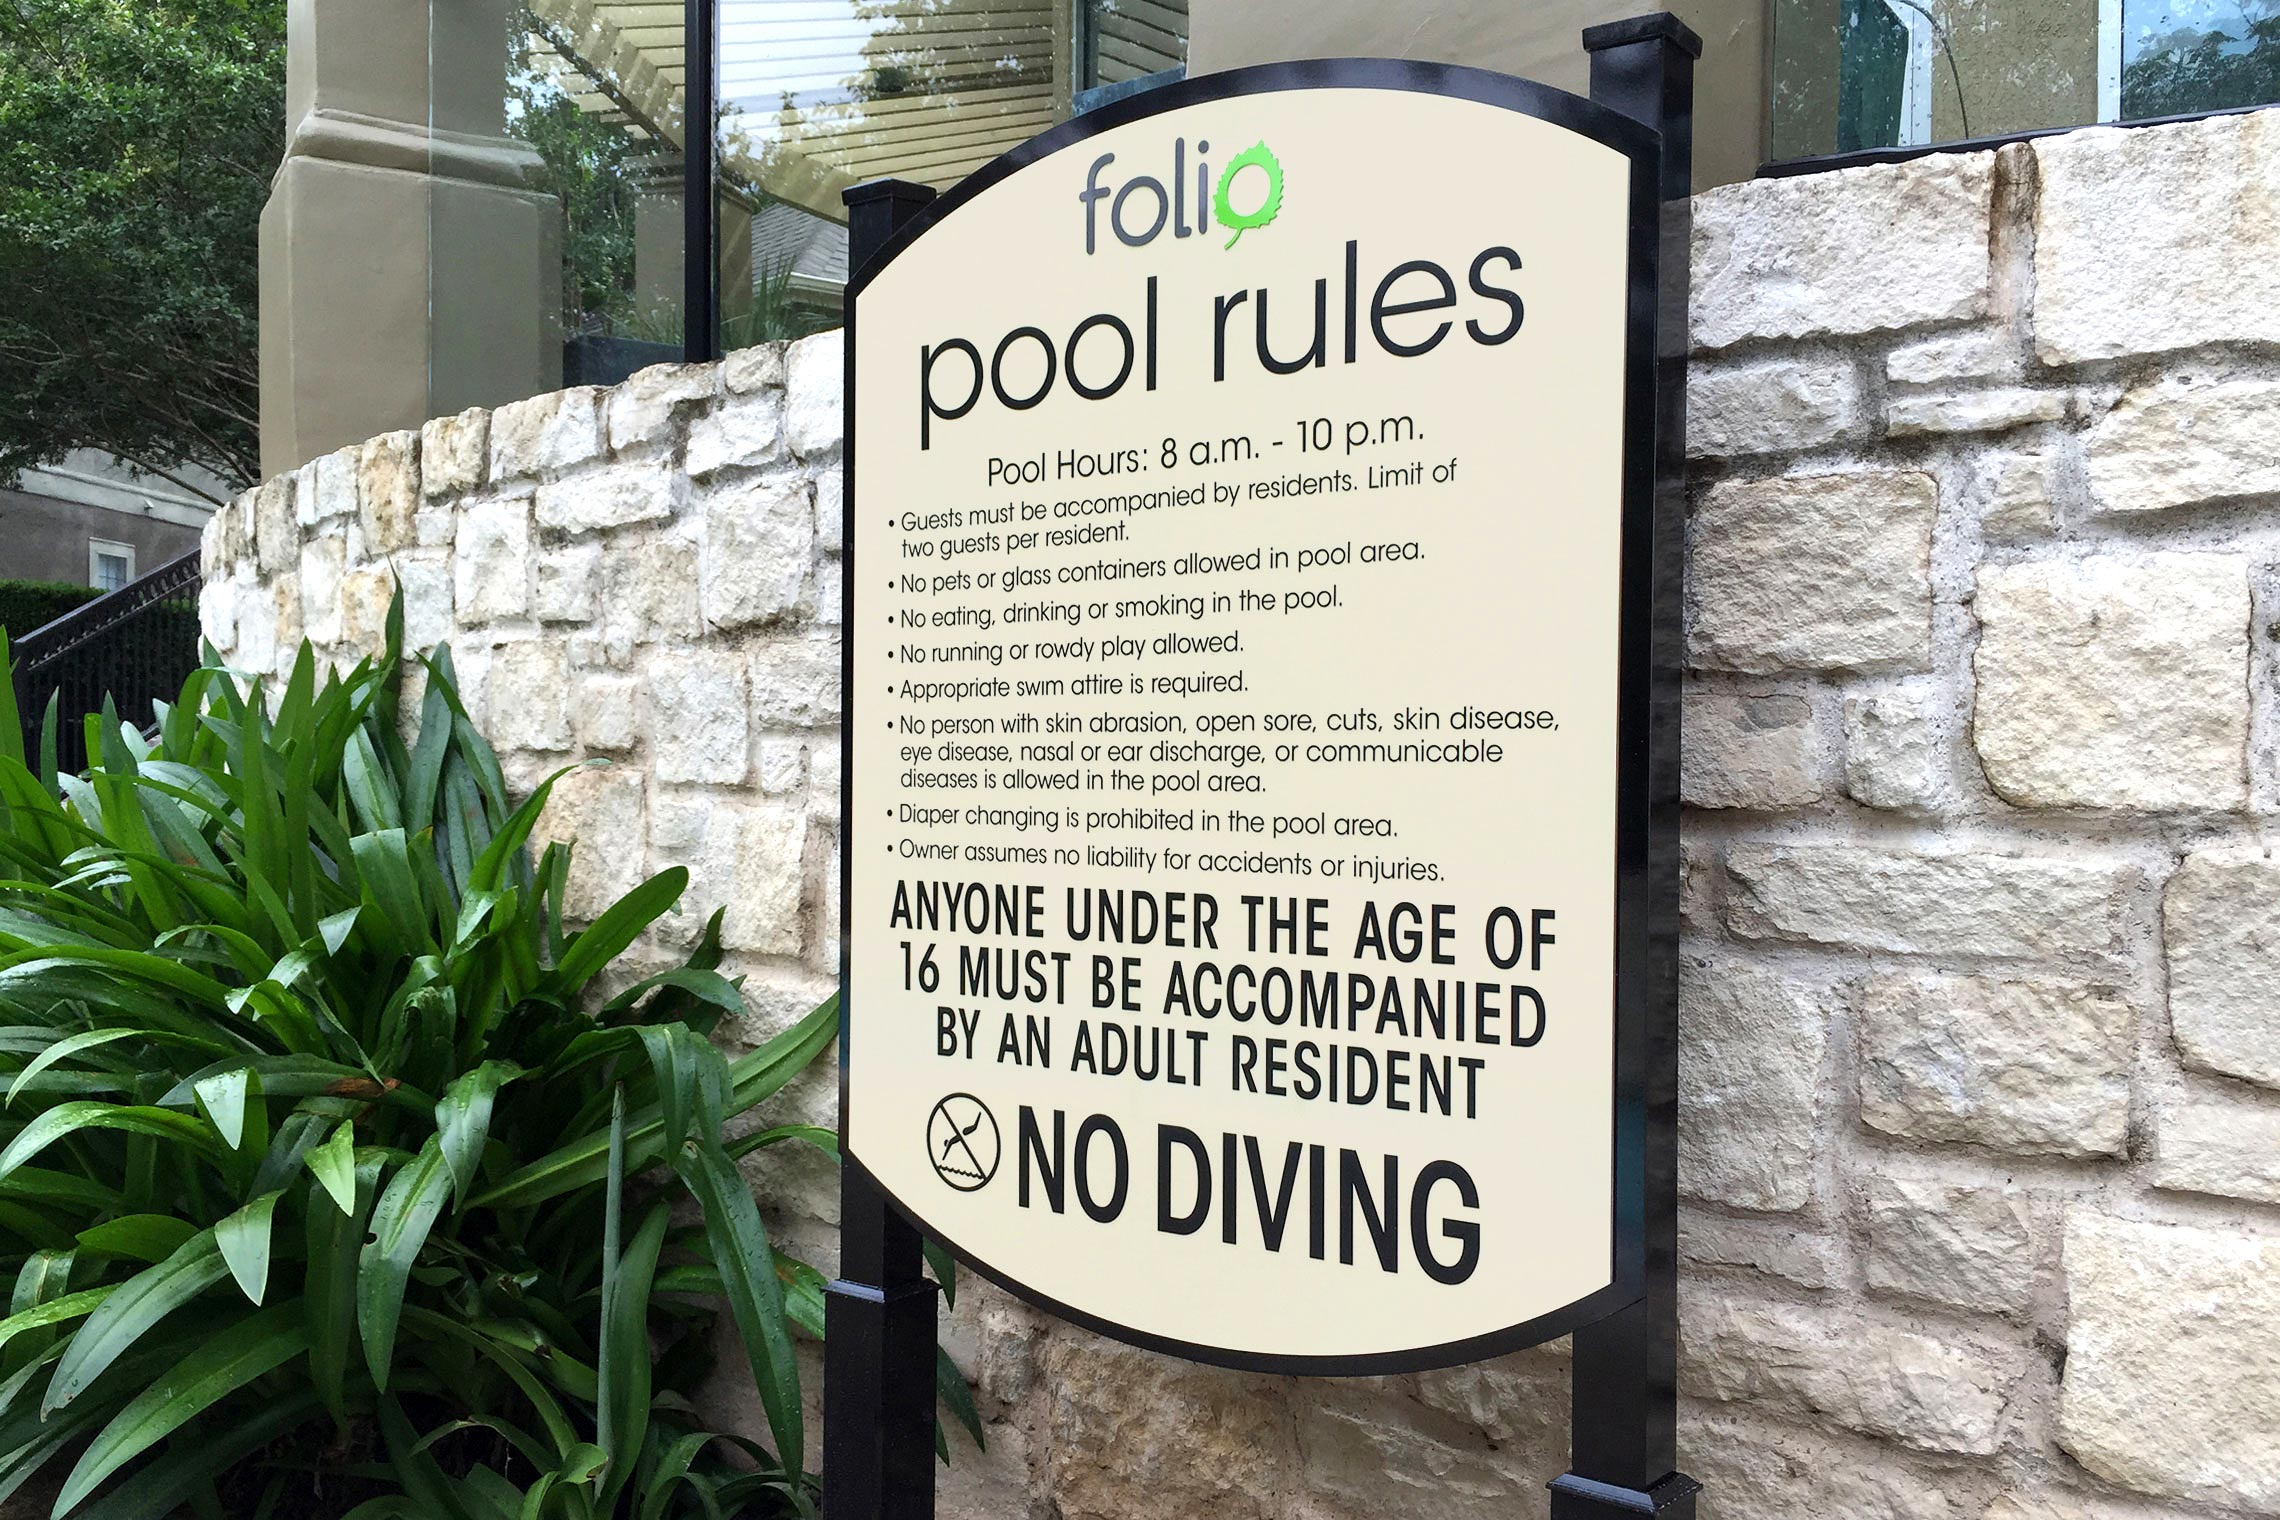 Folio Apartment Homes Pool Rules on Post